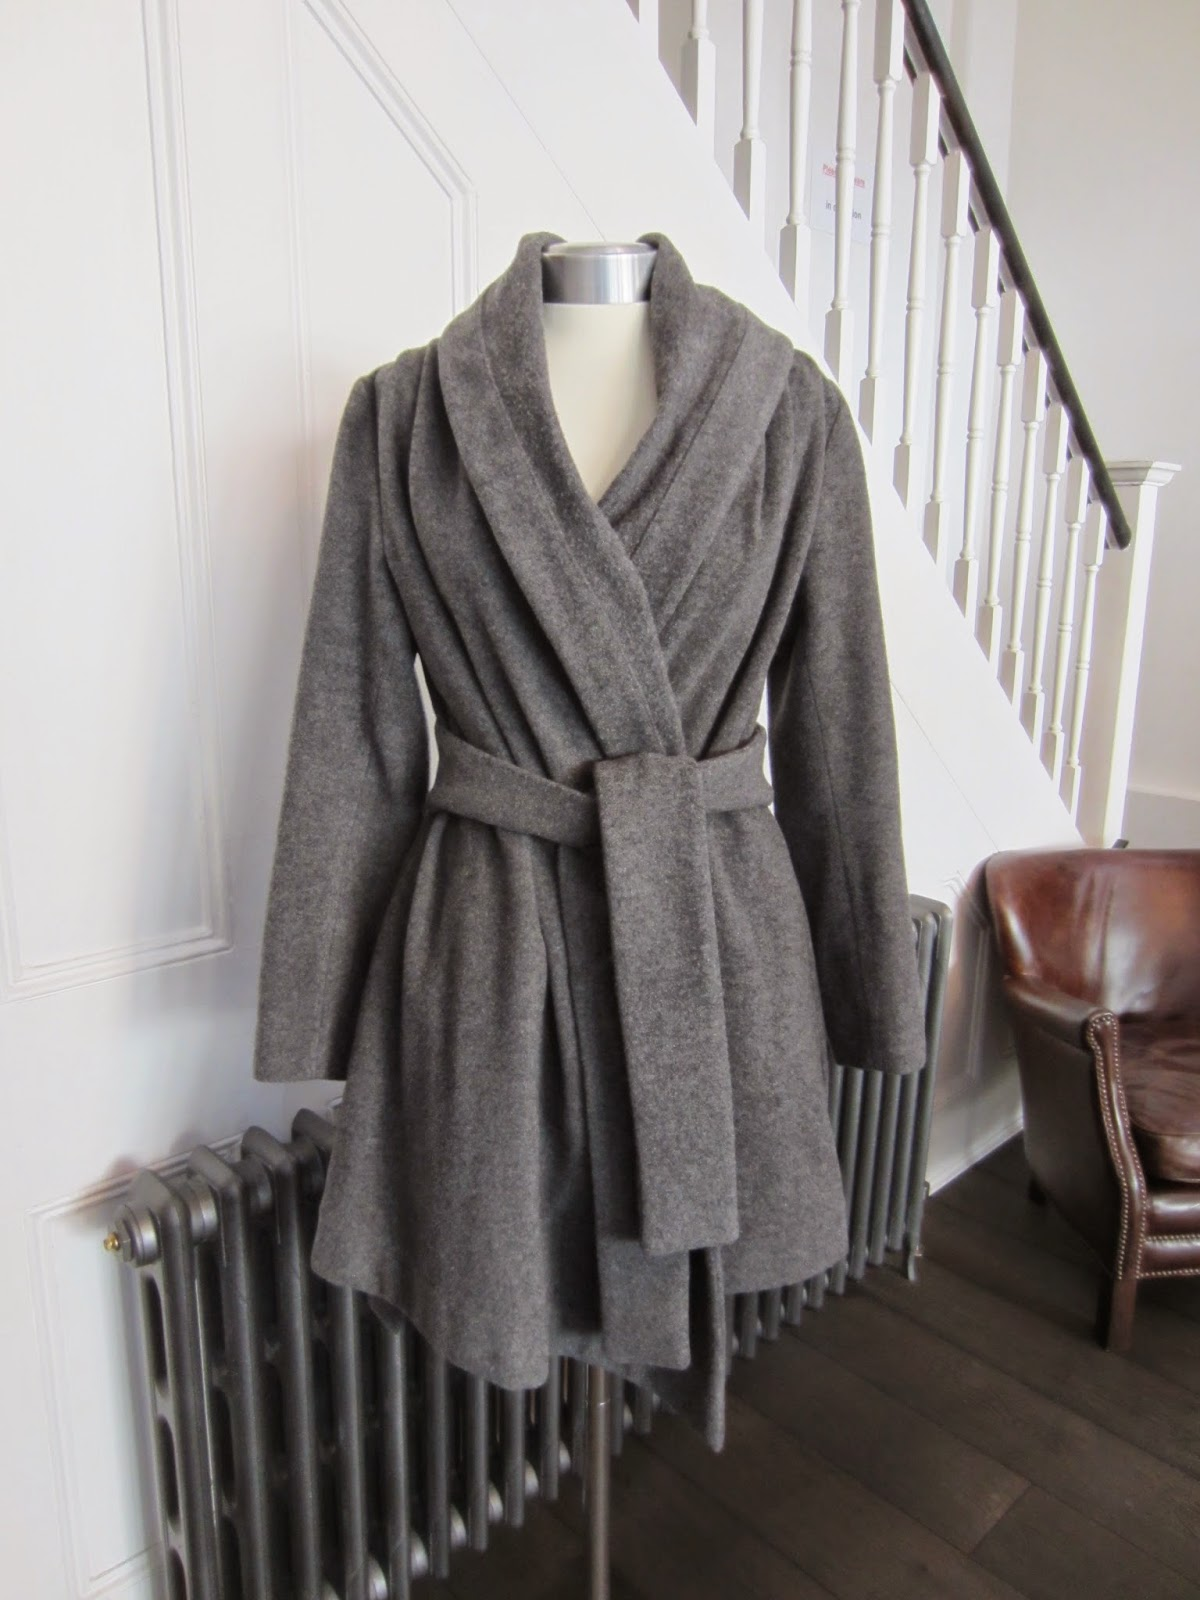 Vivienne Westwood Grey Coat with Belt